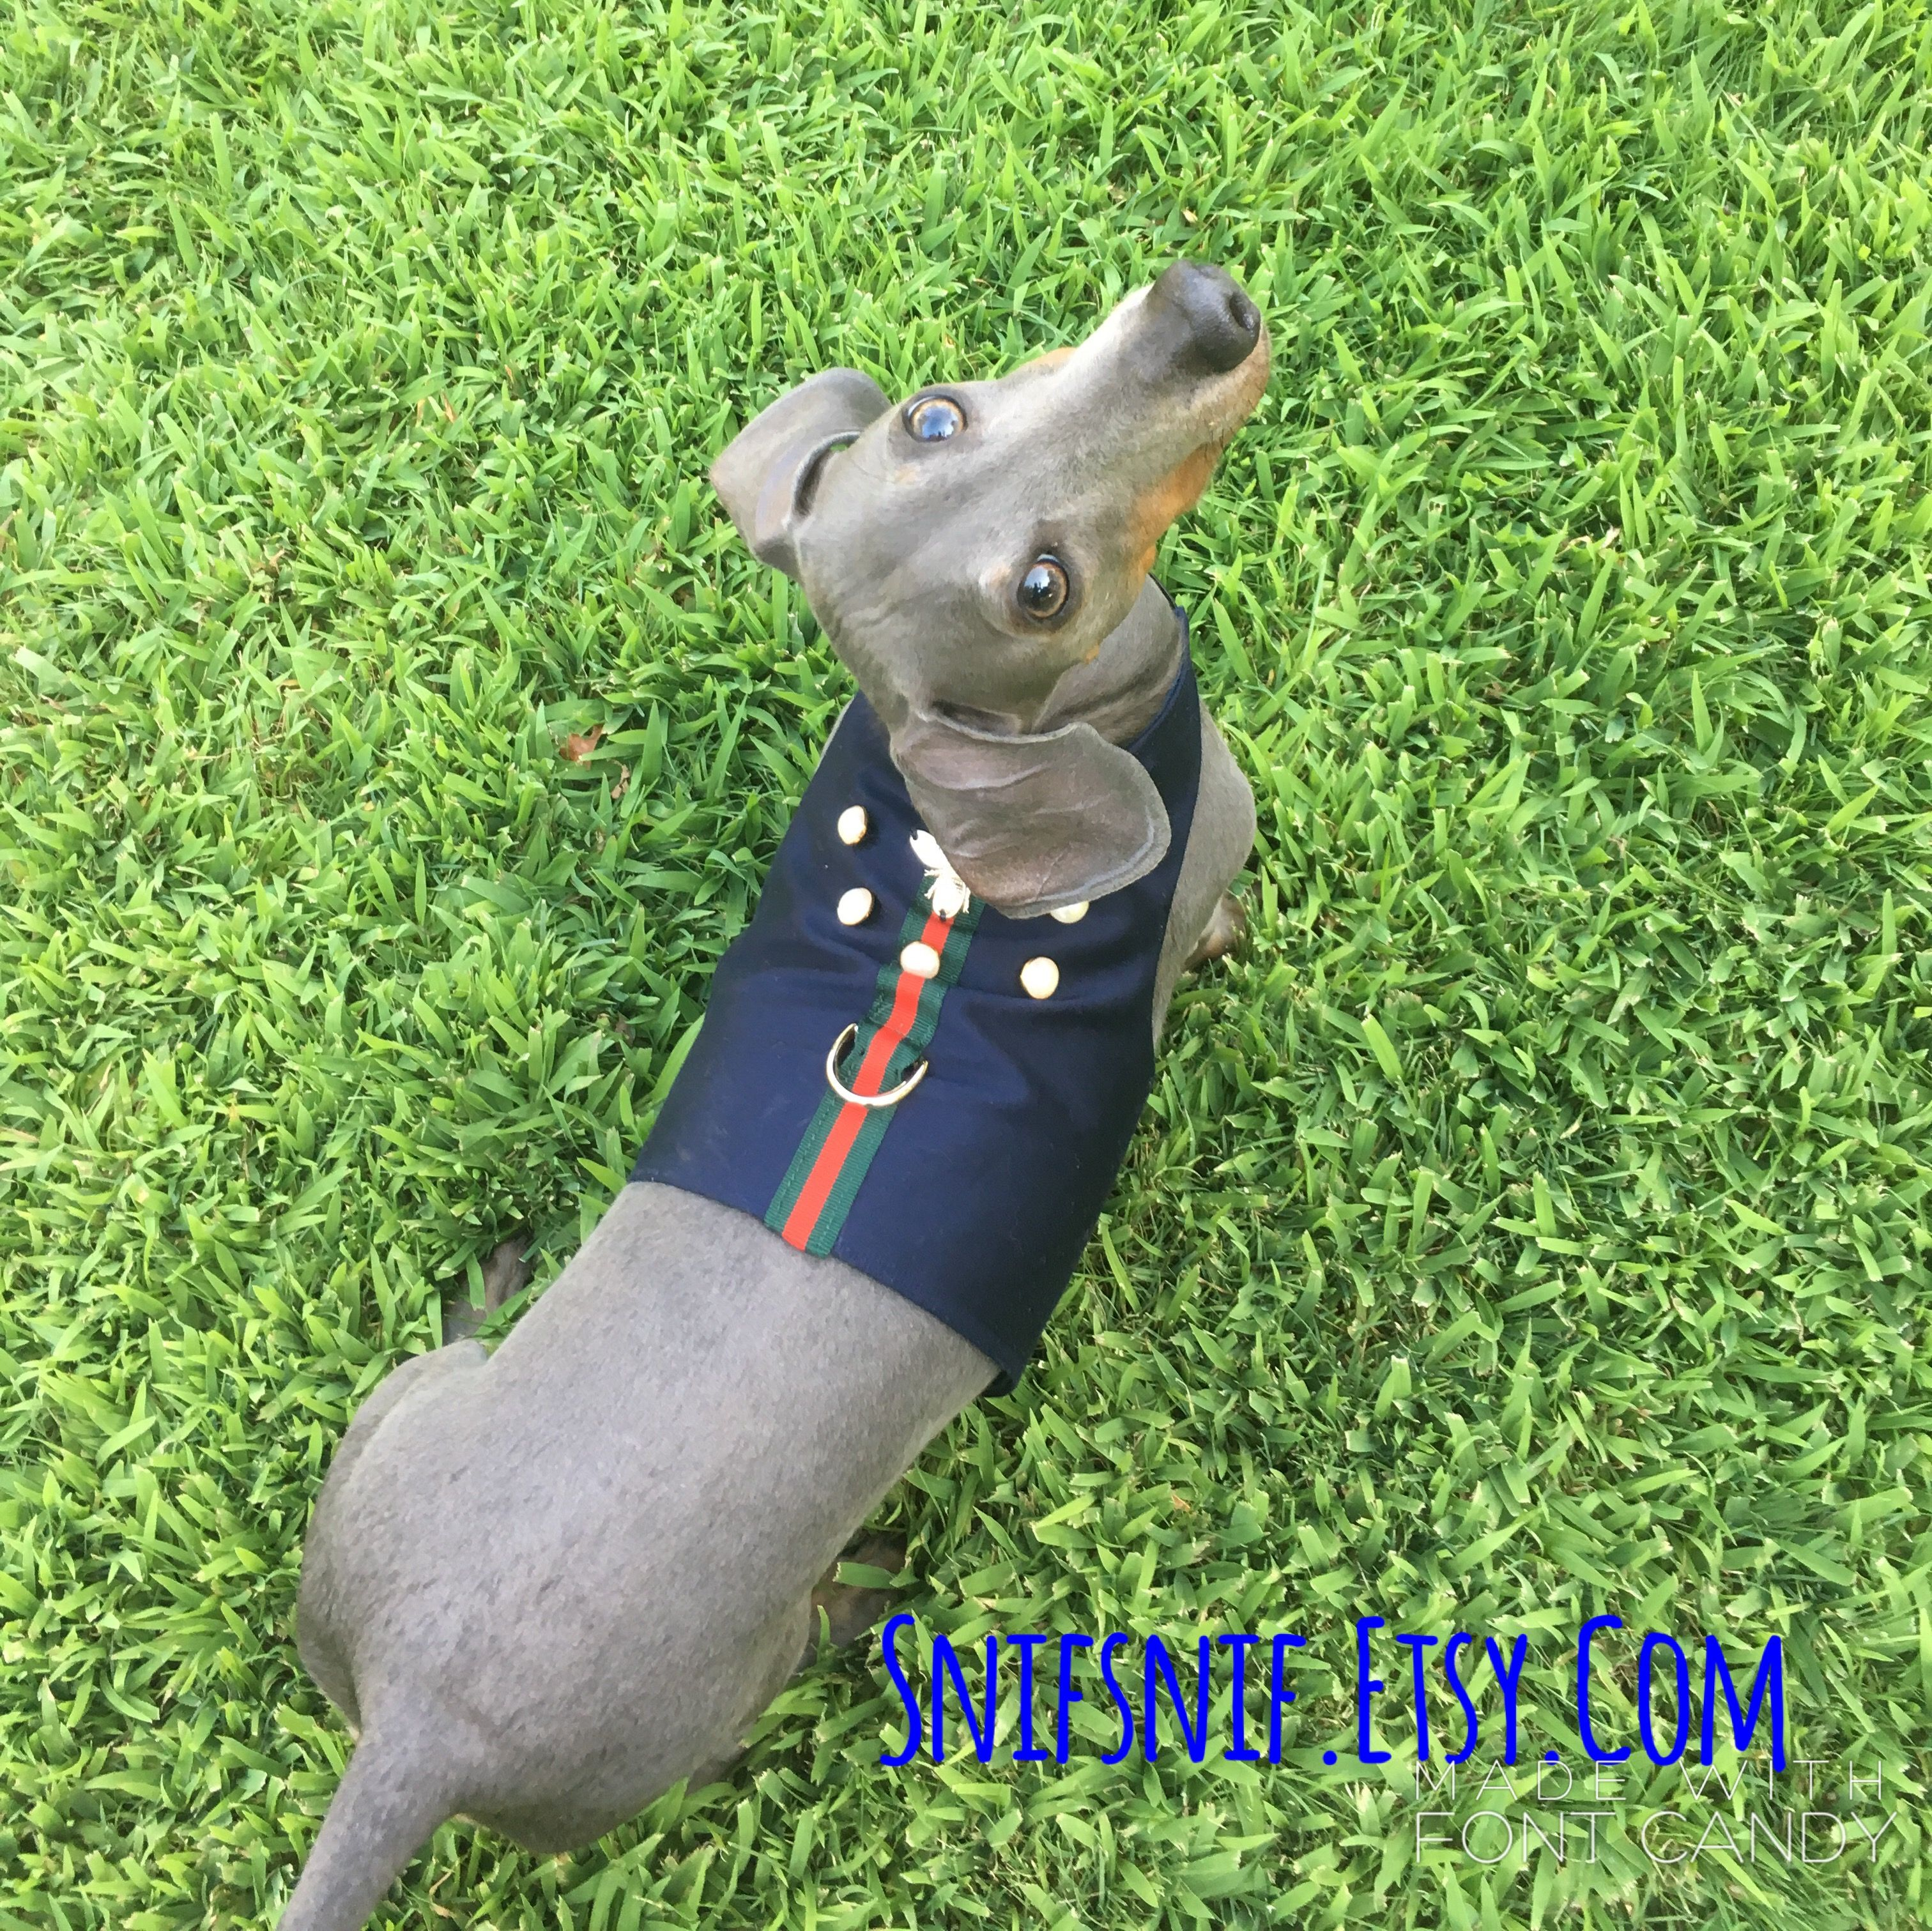 Pin by SNIFSNIF on Blue Dachshund (With images) Blue